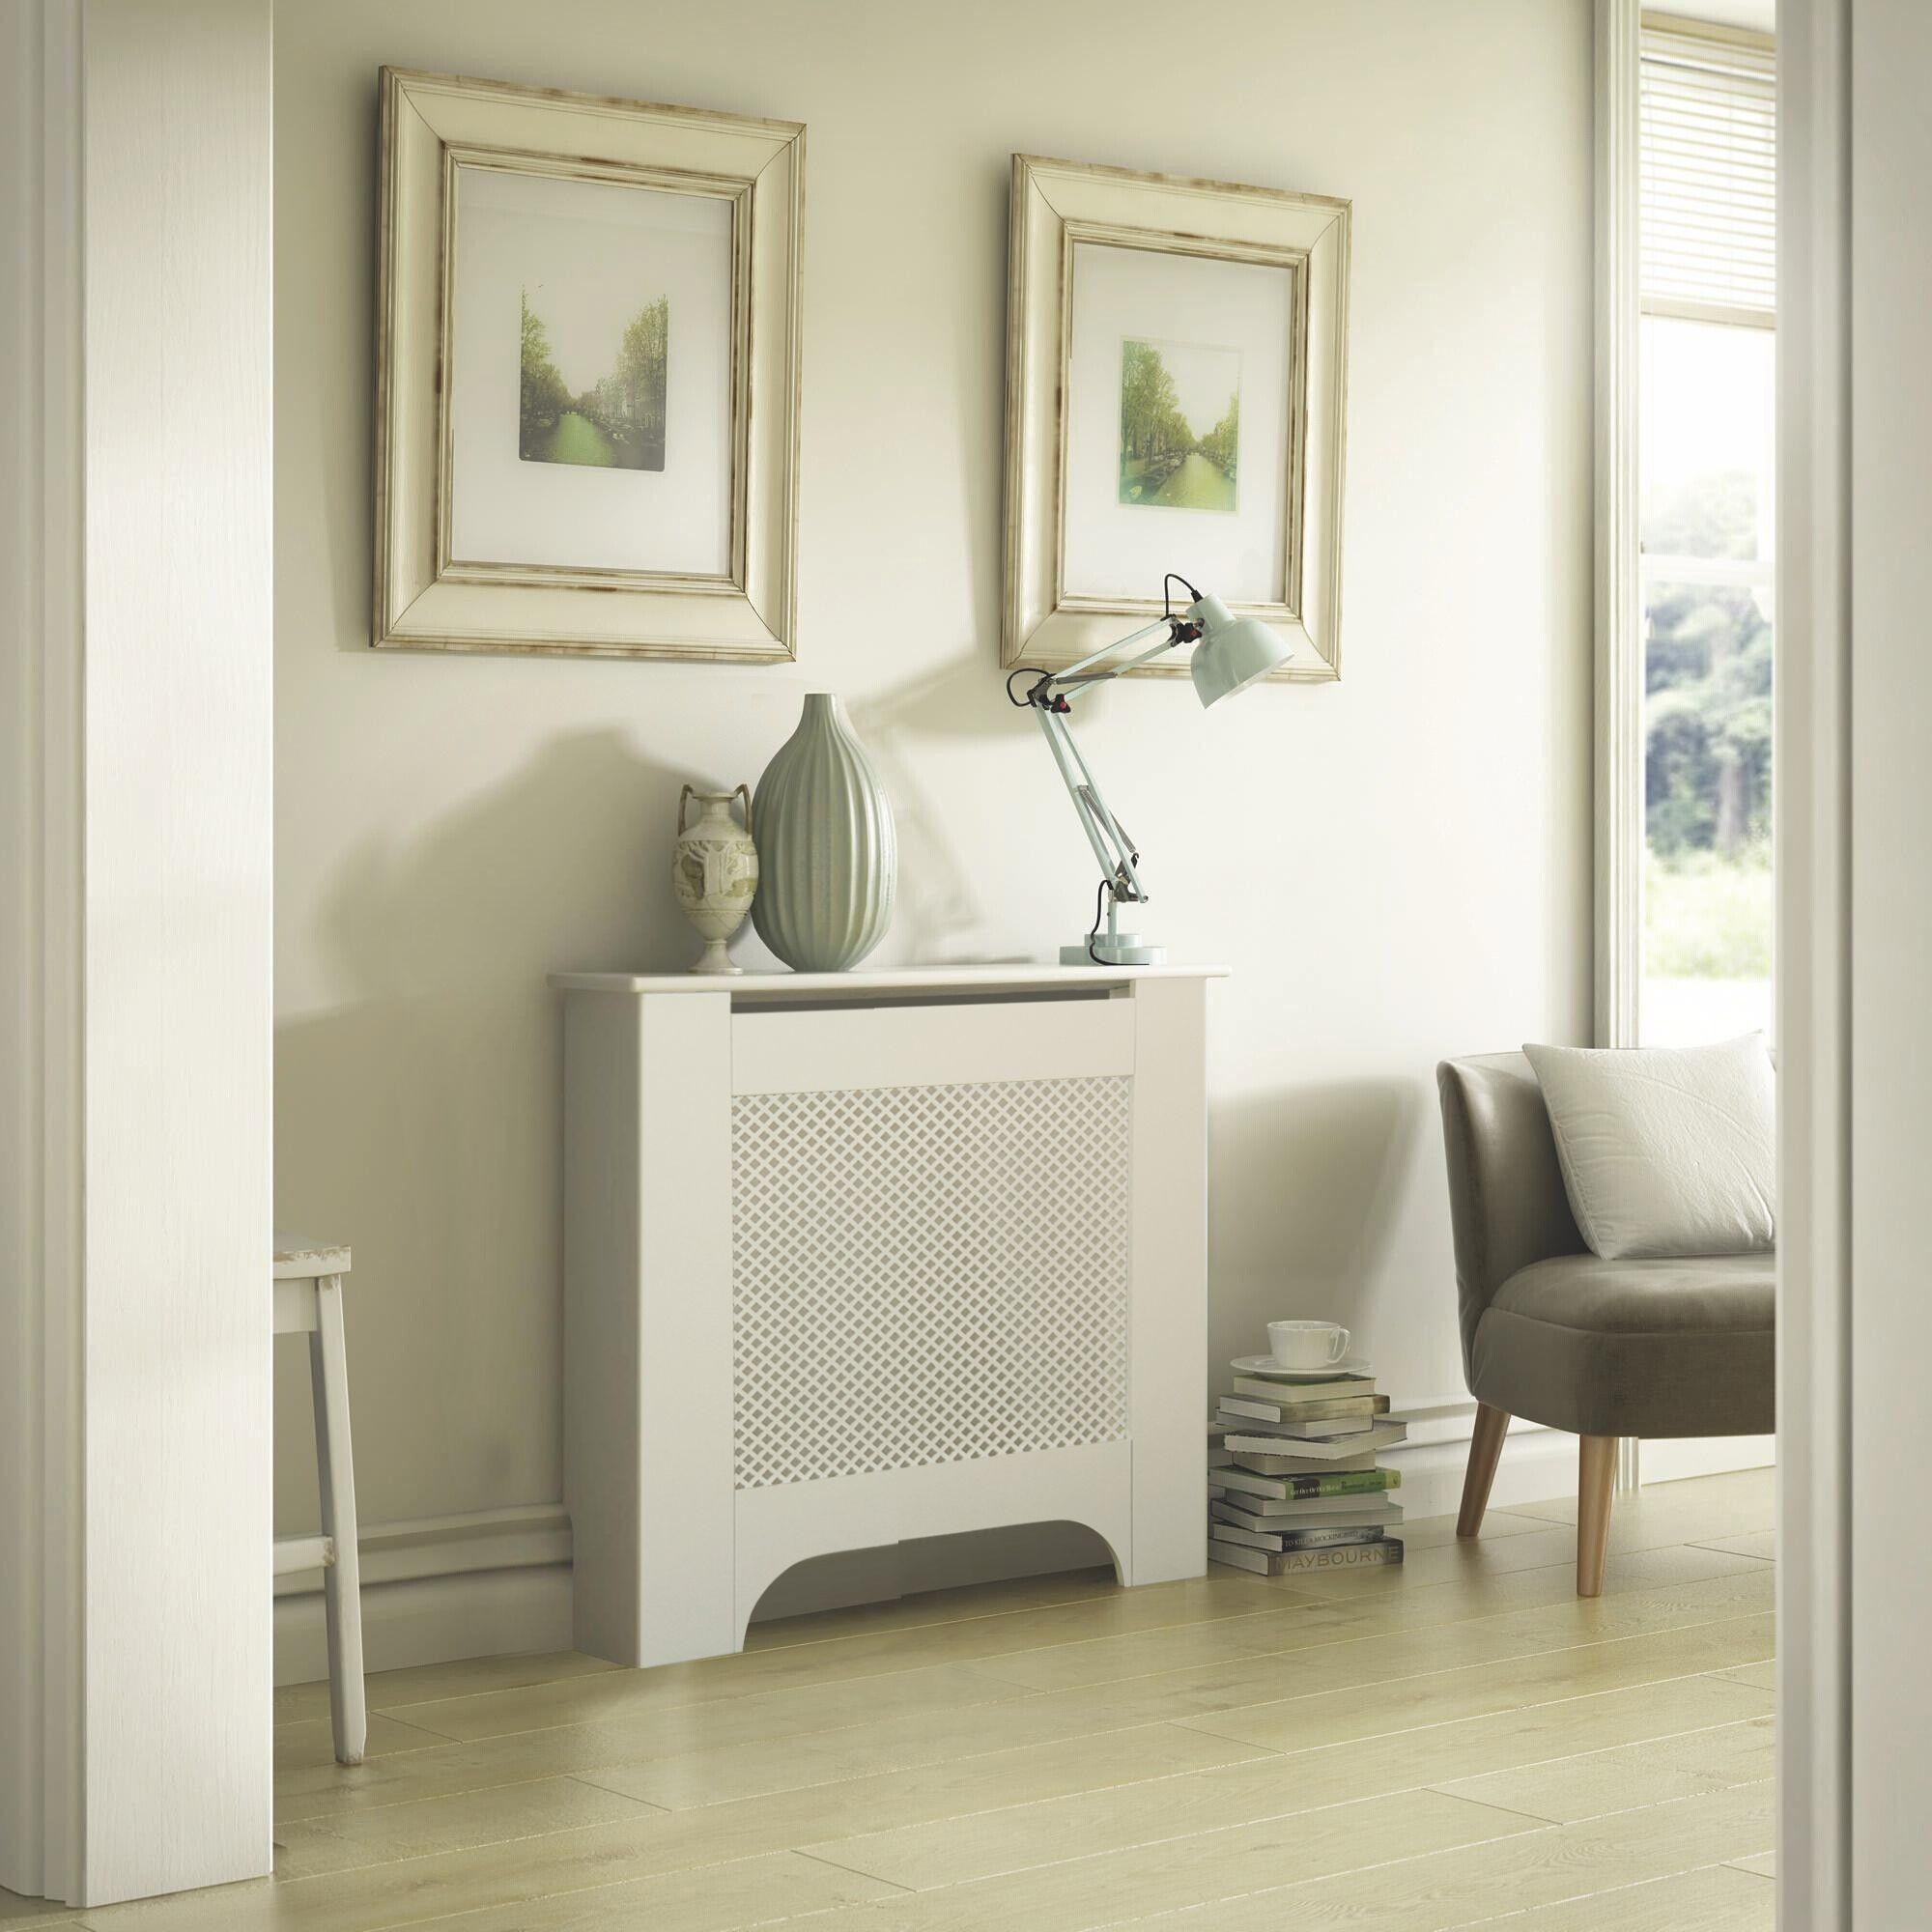 Mayfair Mini White Painted Radiator Cover Departments